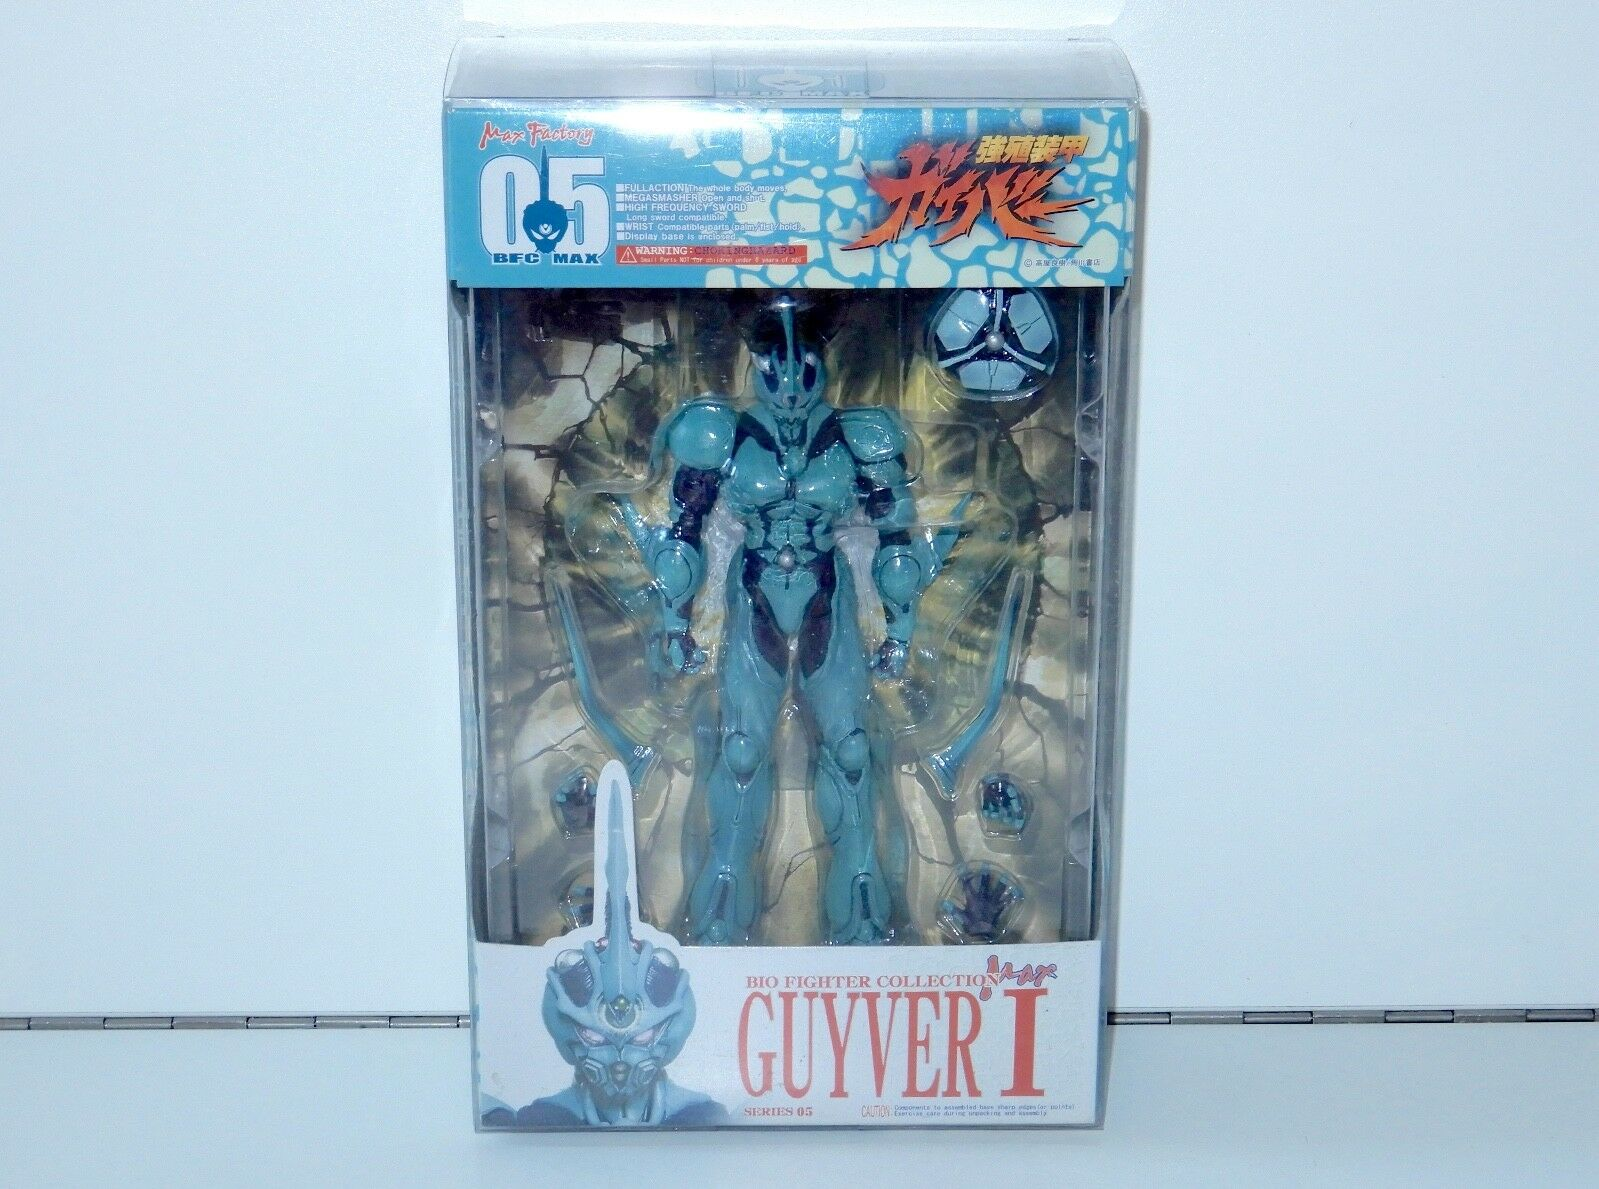 GUYVER BIO FIGHTER COLLECTION SERIES 05 GUYVER-I MIB MAX FACTORY